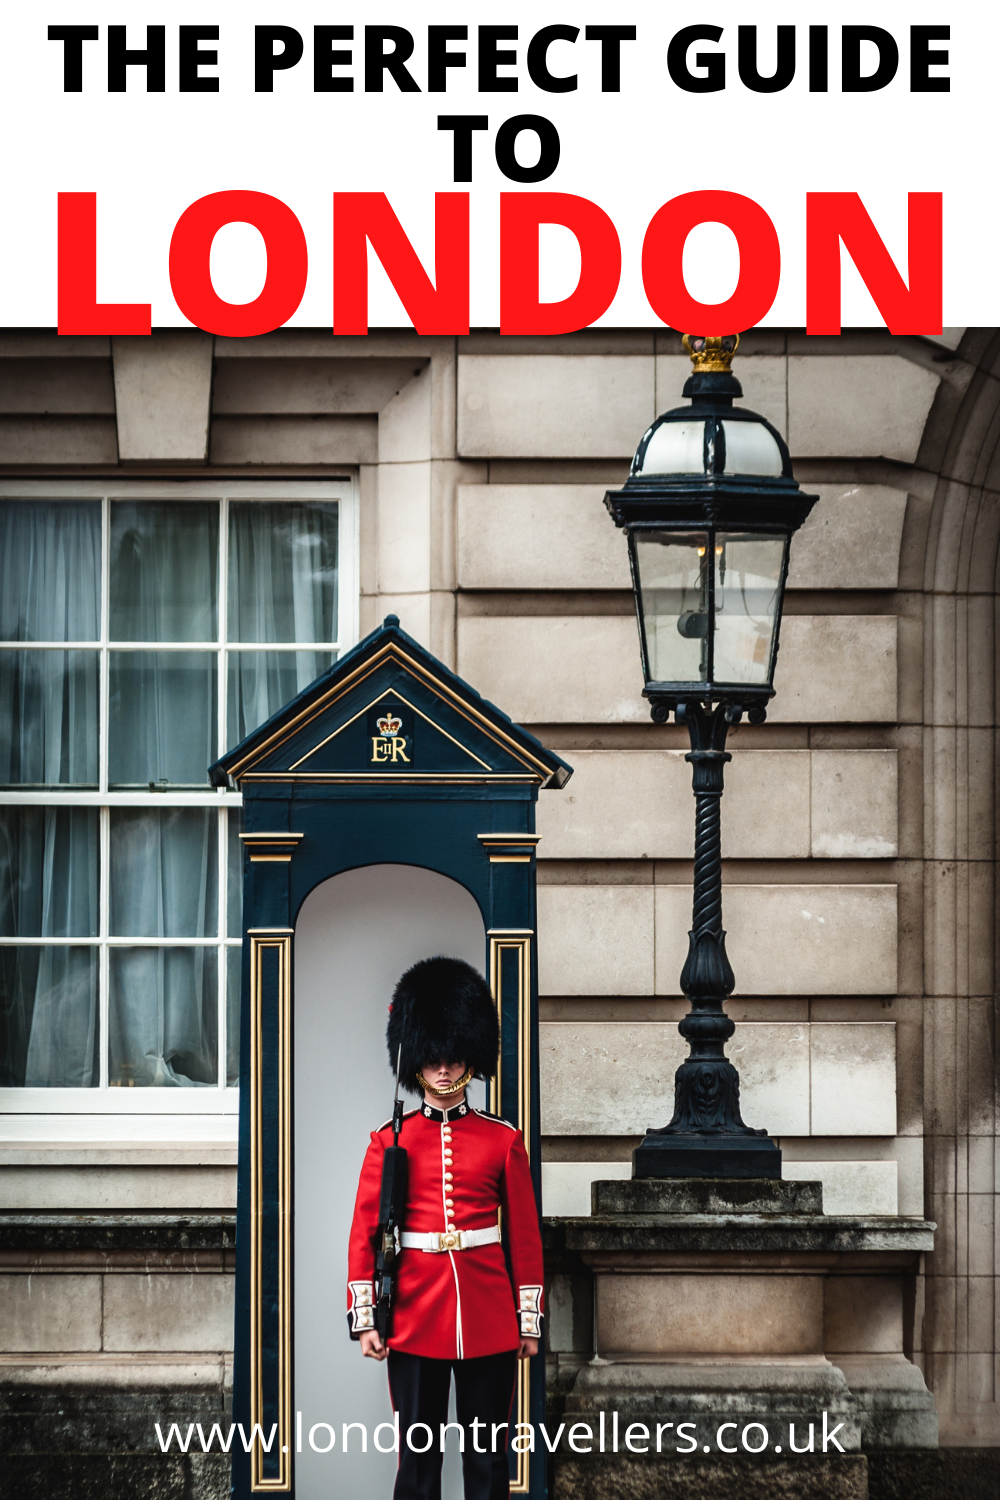 The Perfect Guide to London